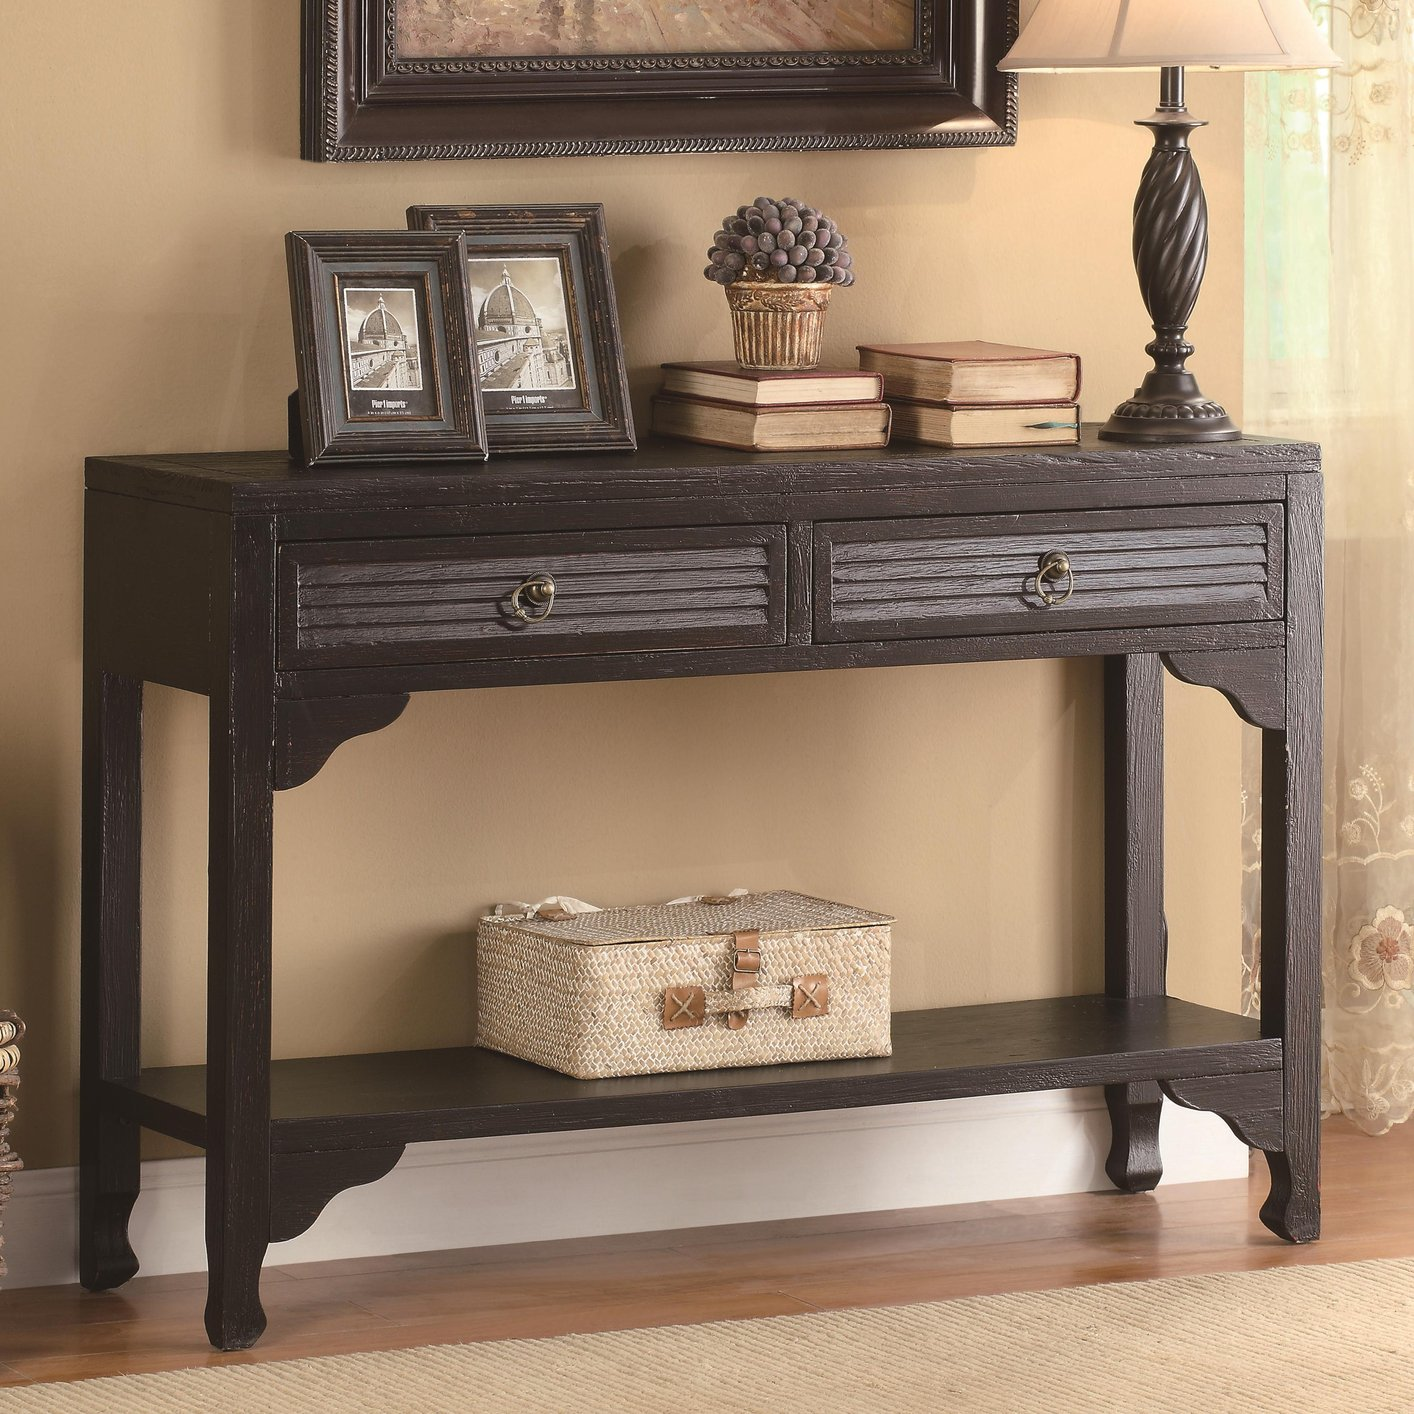 Black Wood Console Table StealASofa Furniture Outlet Los Angeles CA